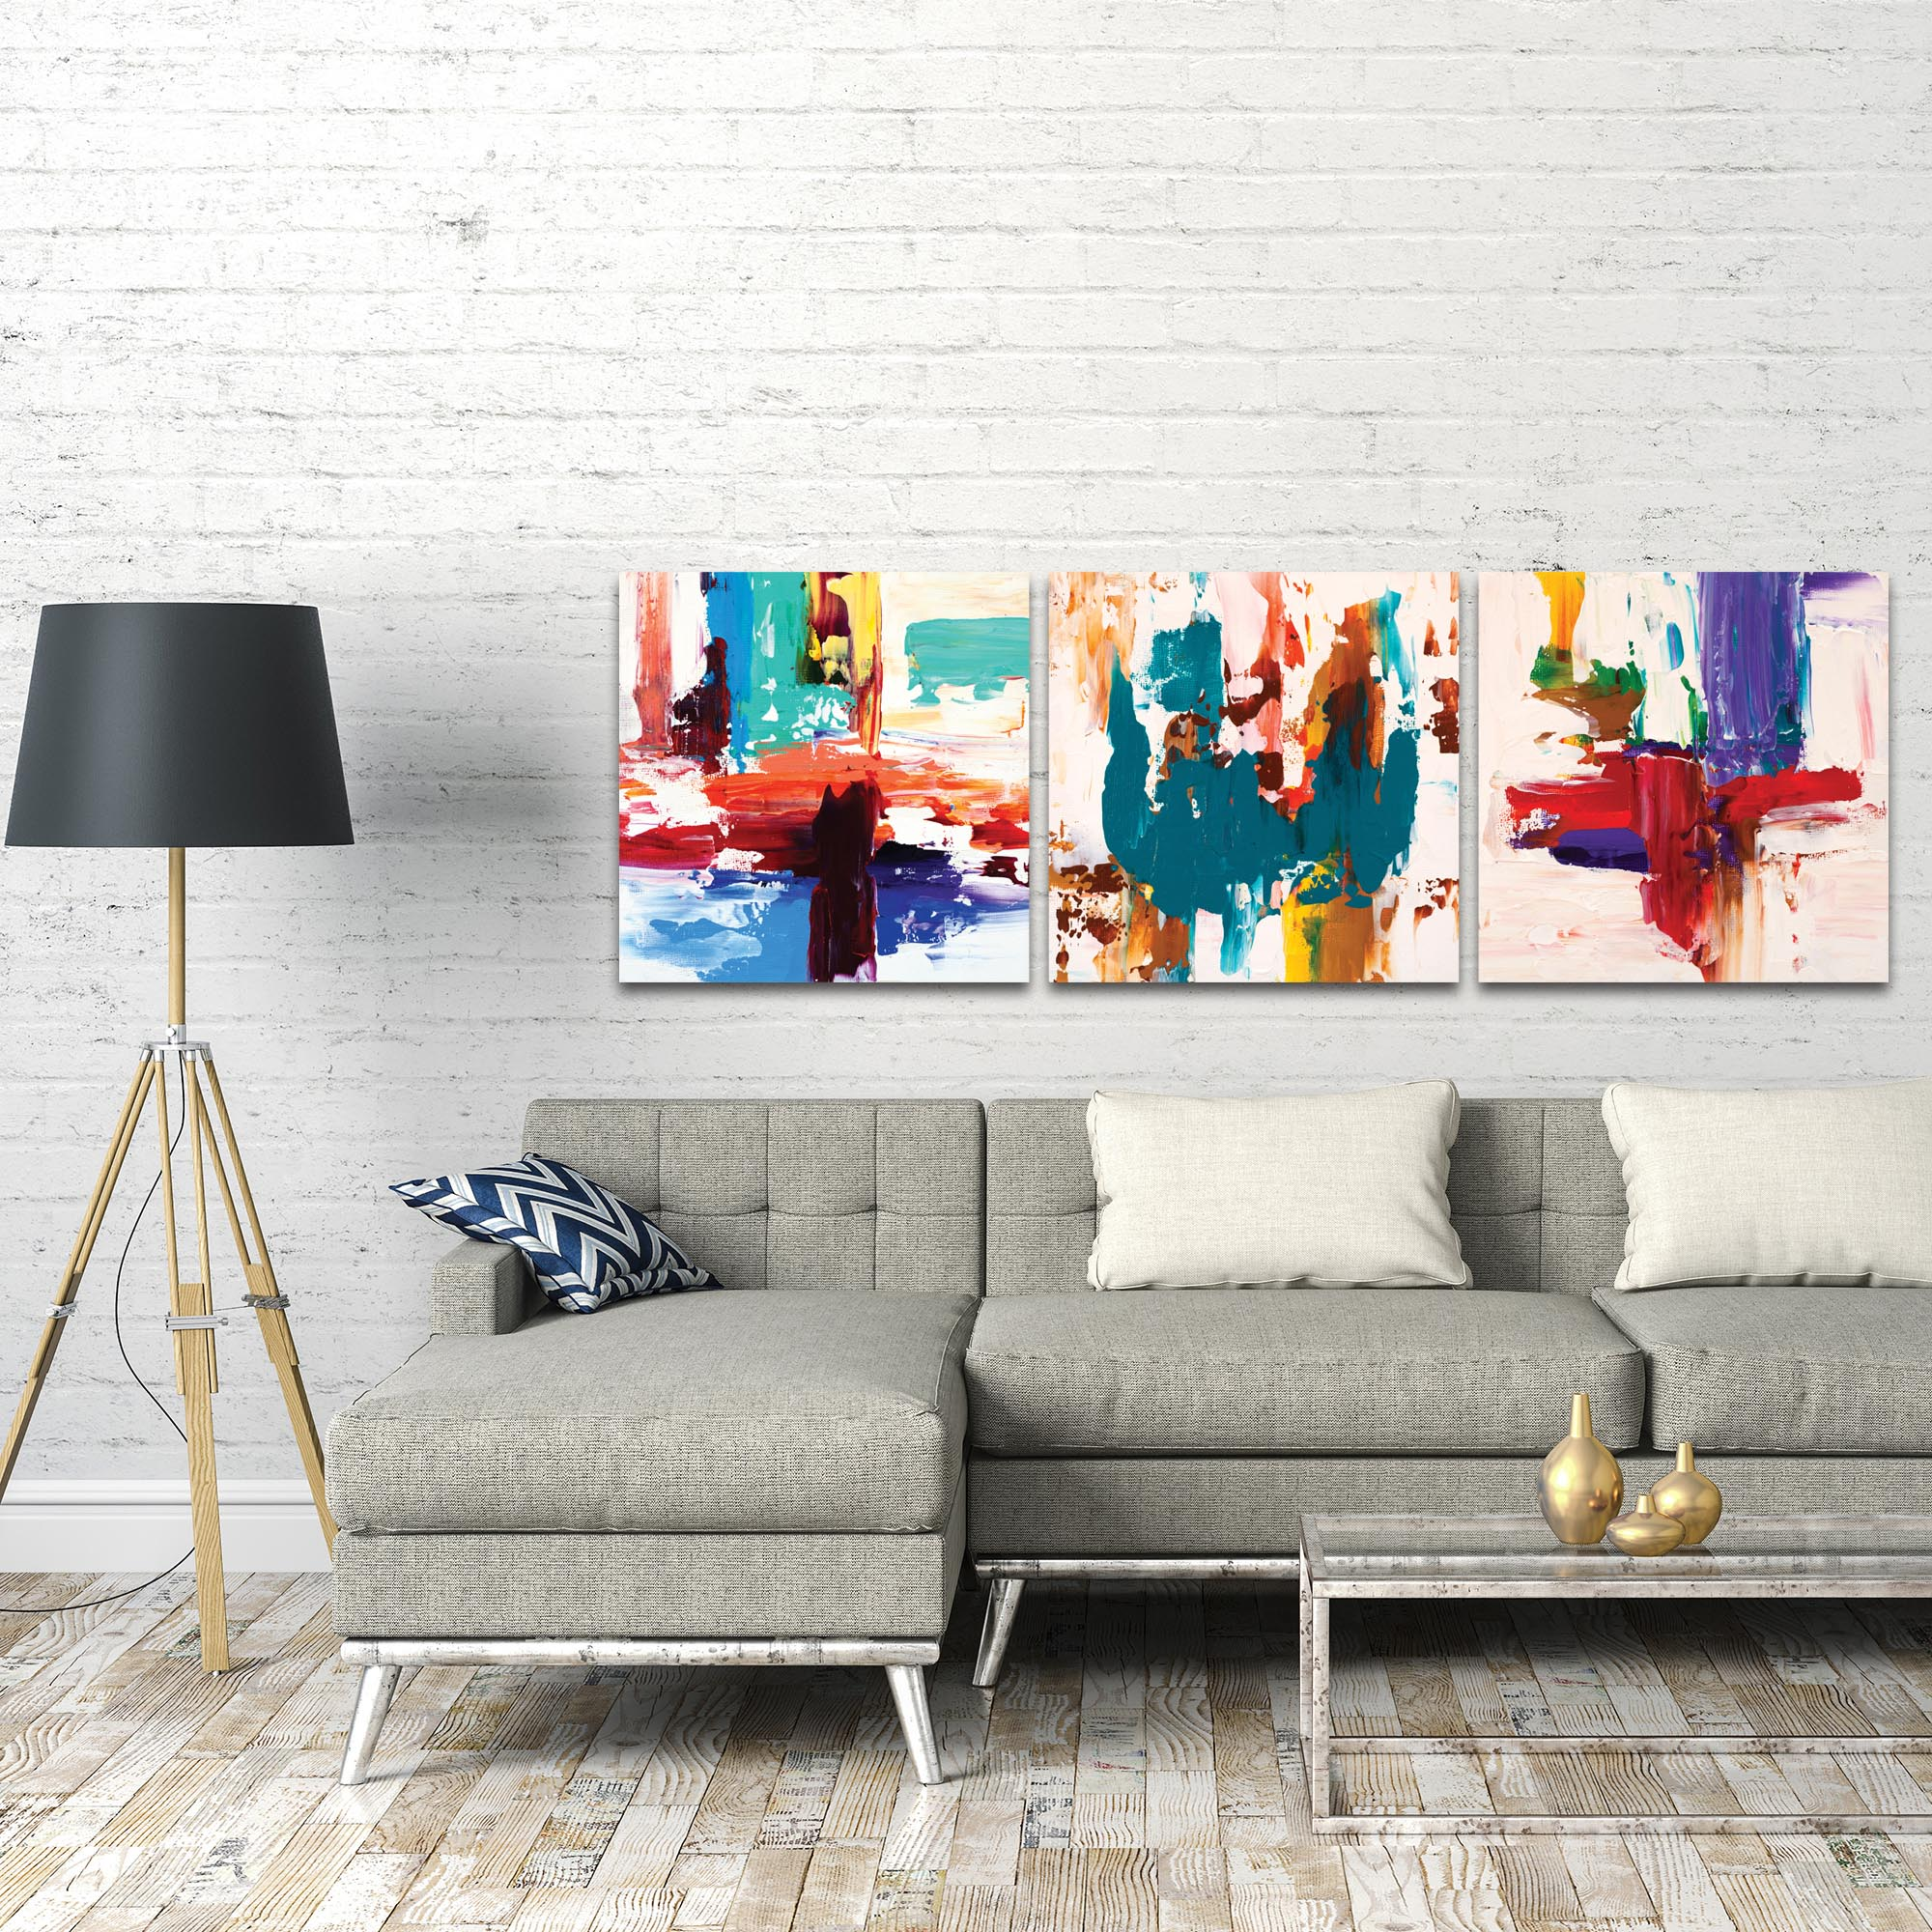 Abstract Wall Art 'Urban Triptych 2 Large' - Urban Decor on Metal or Plexiglass - Lifestyle View